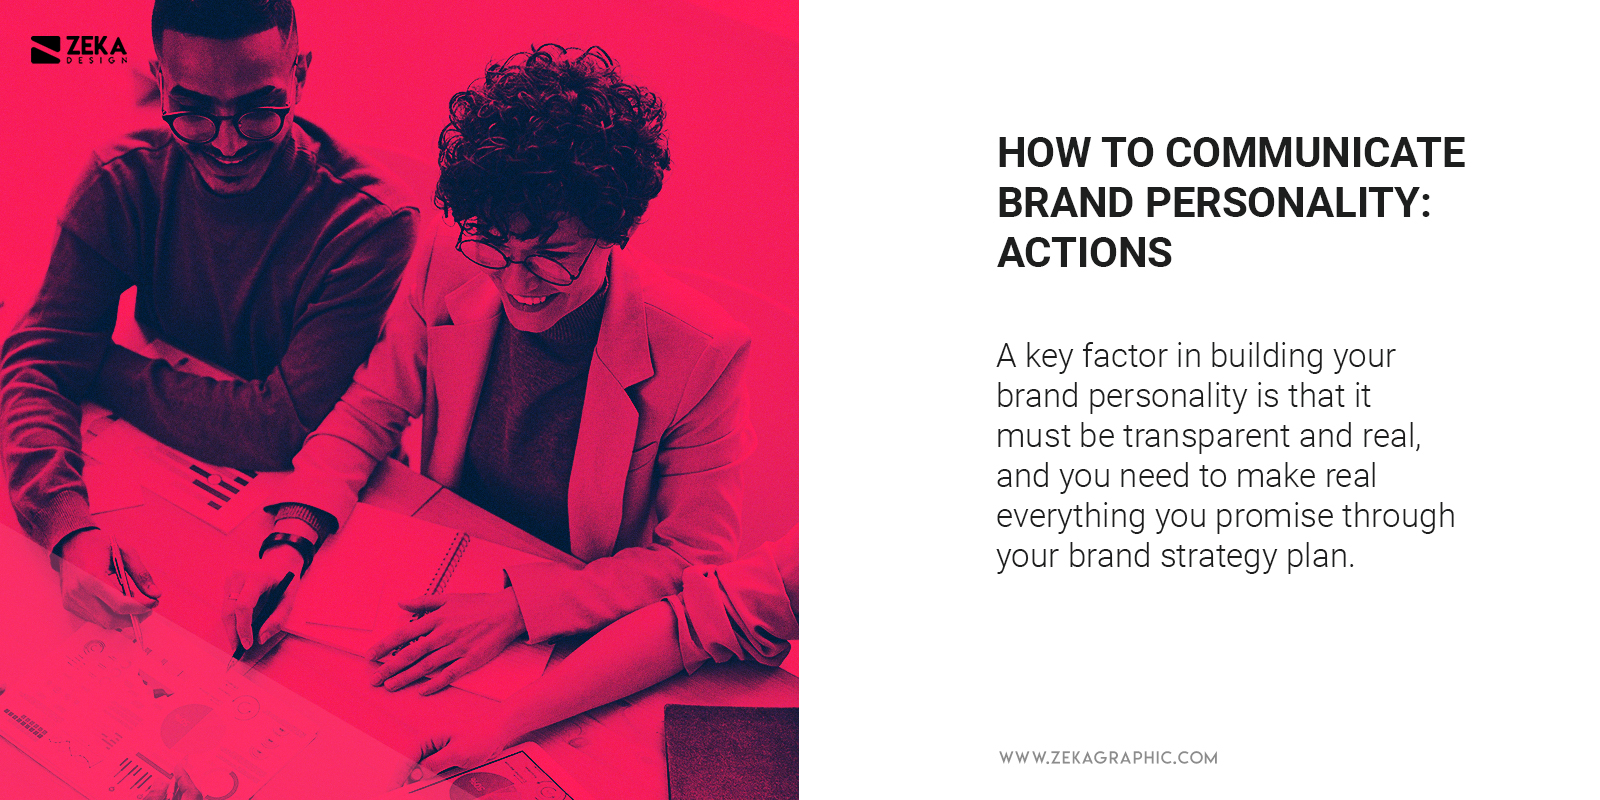 Communicate Brand Personality With Actions